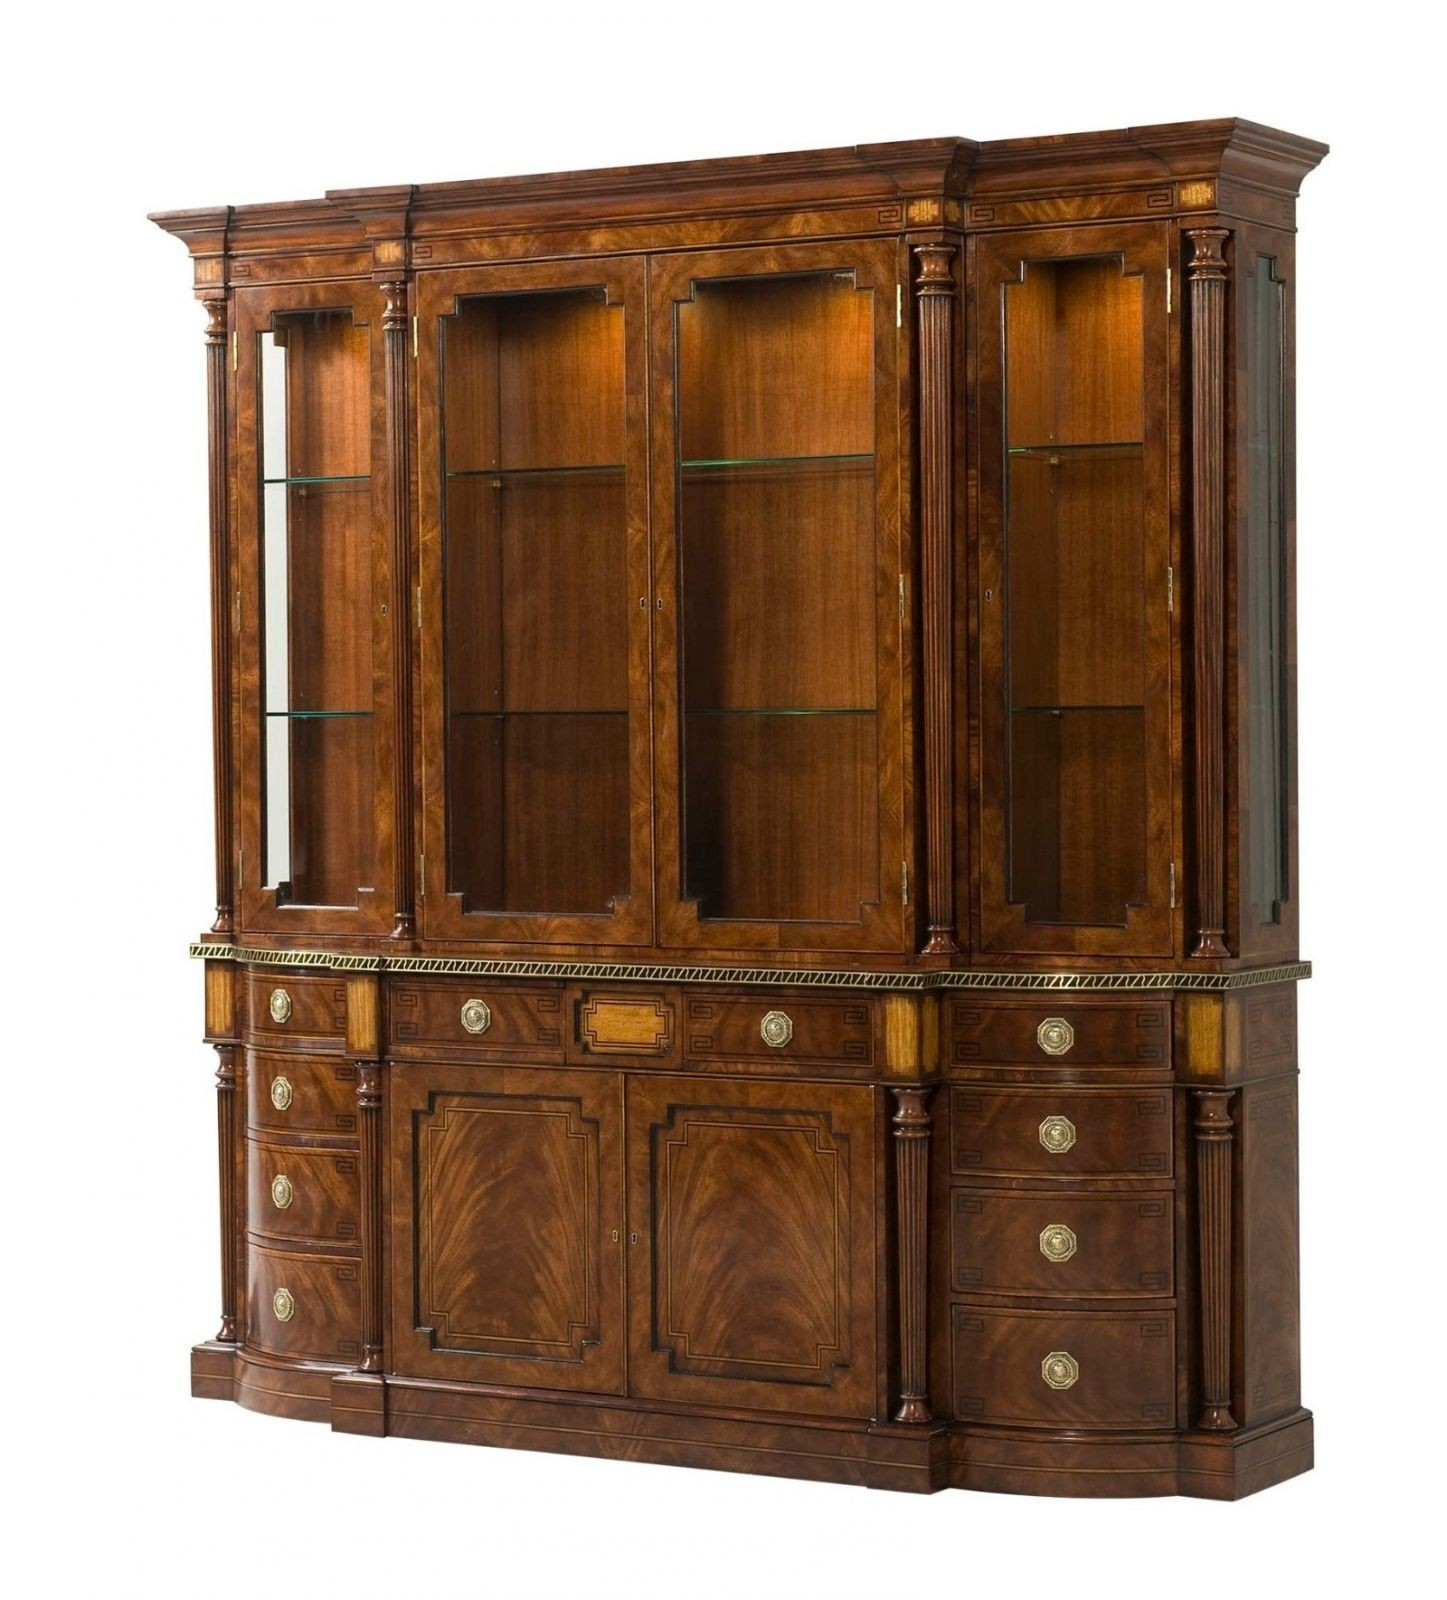 A fine mahogany veneered and yew burl banded cabinet